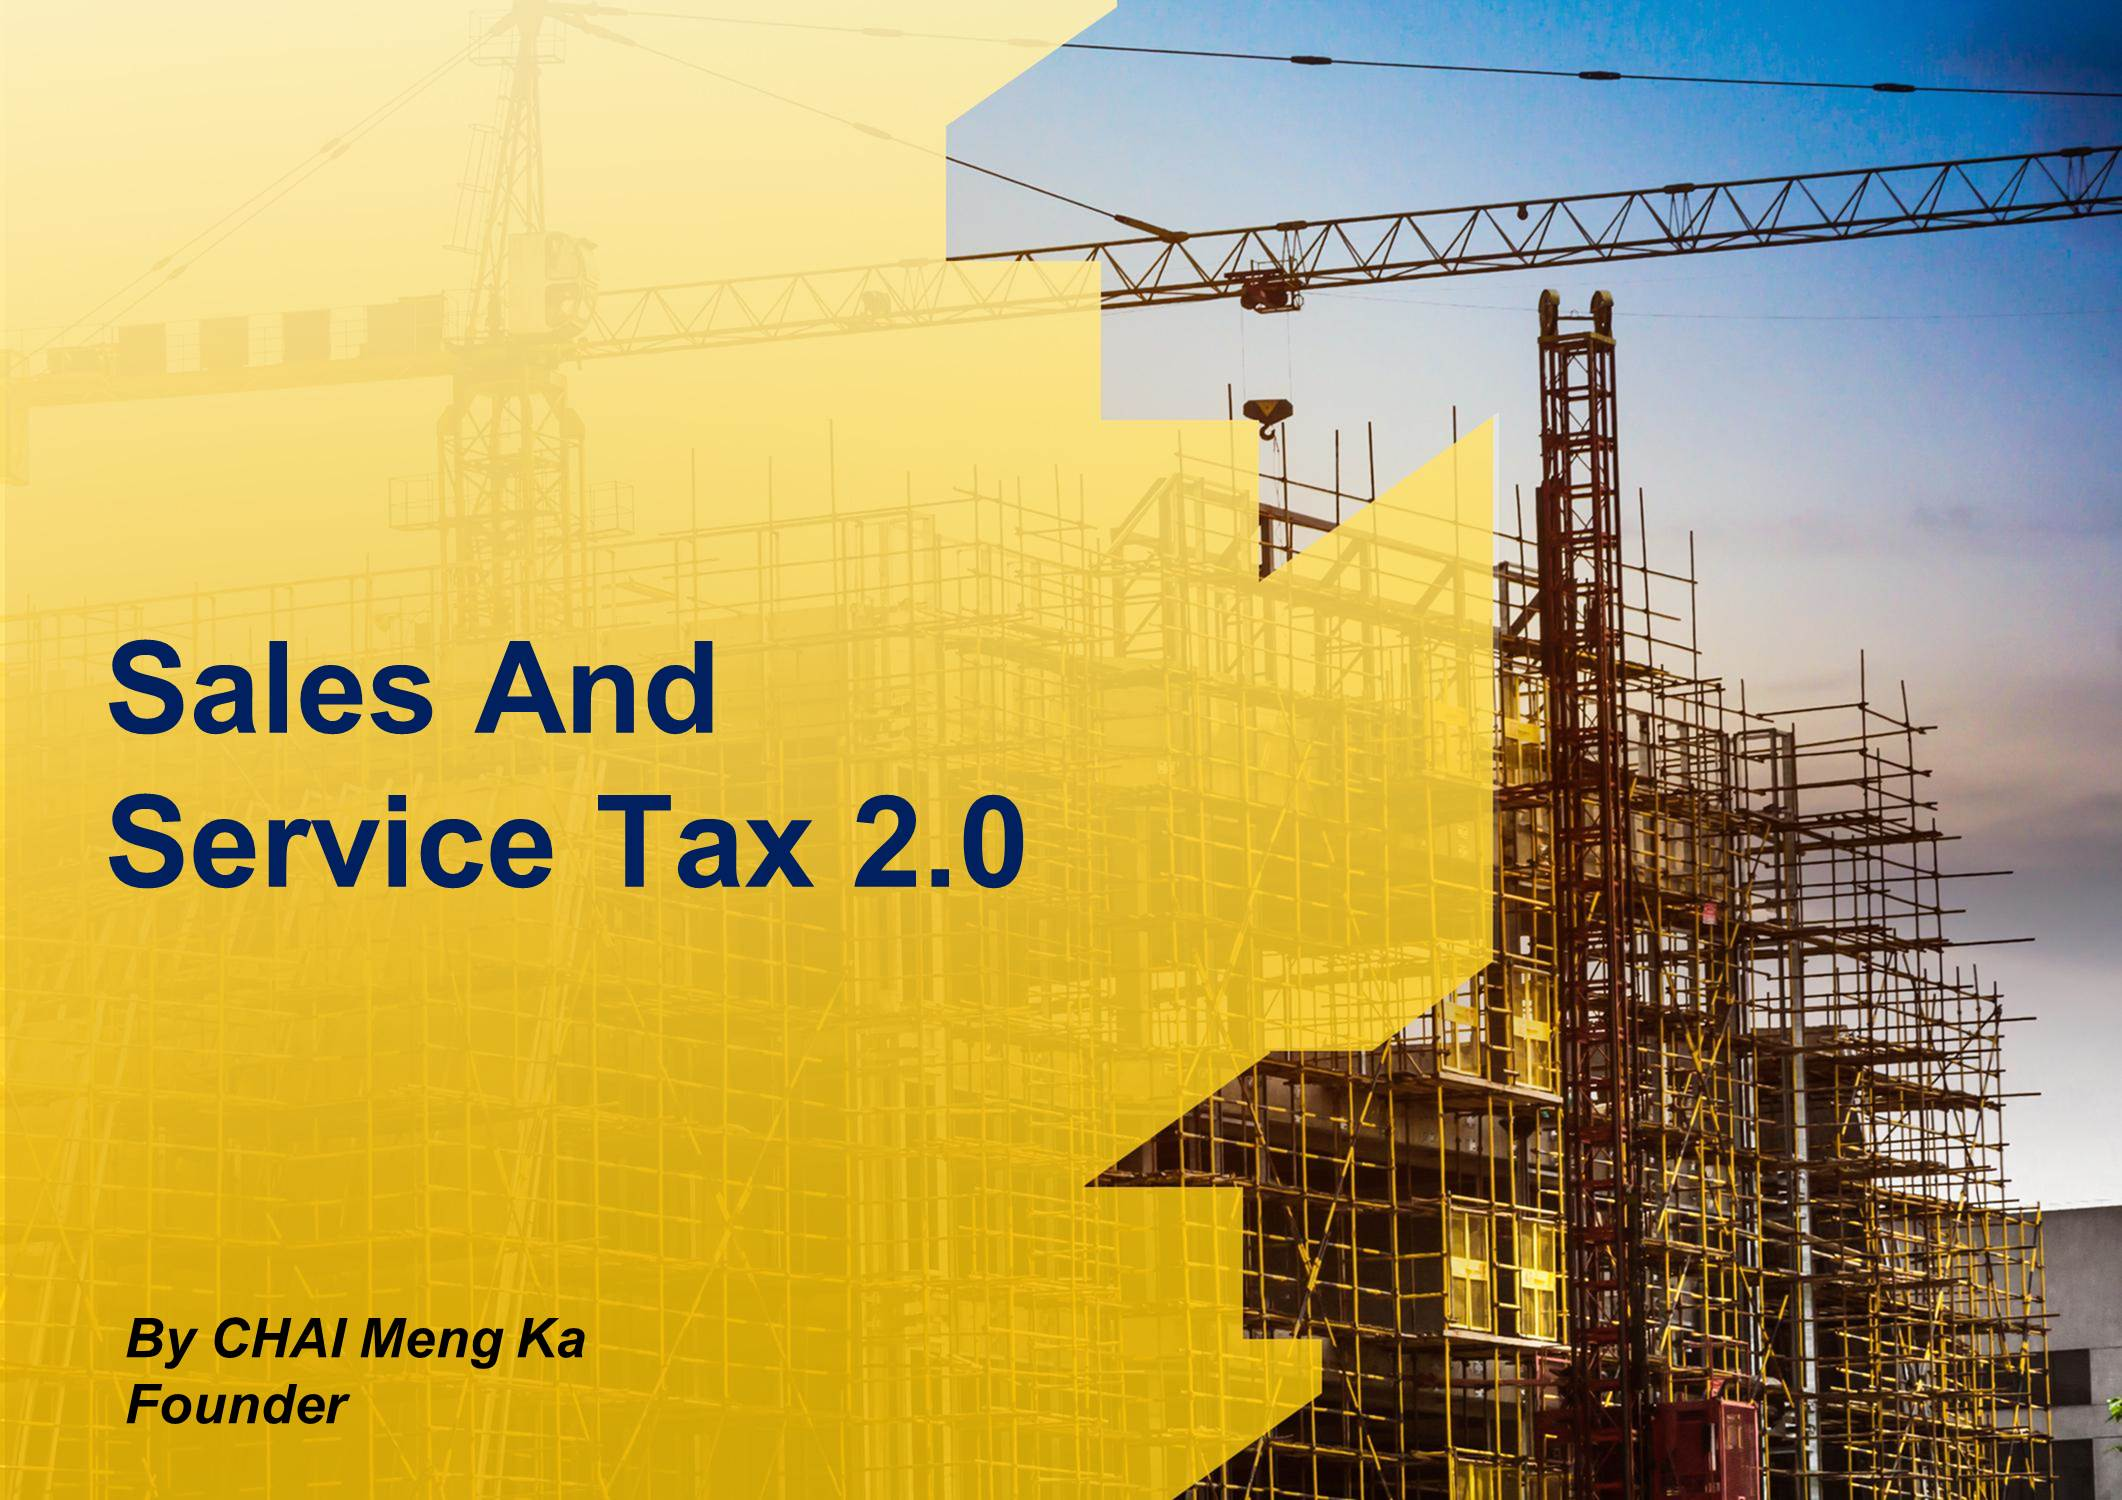 Sales And Service Tax 2.0